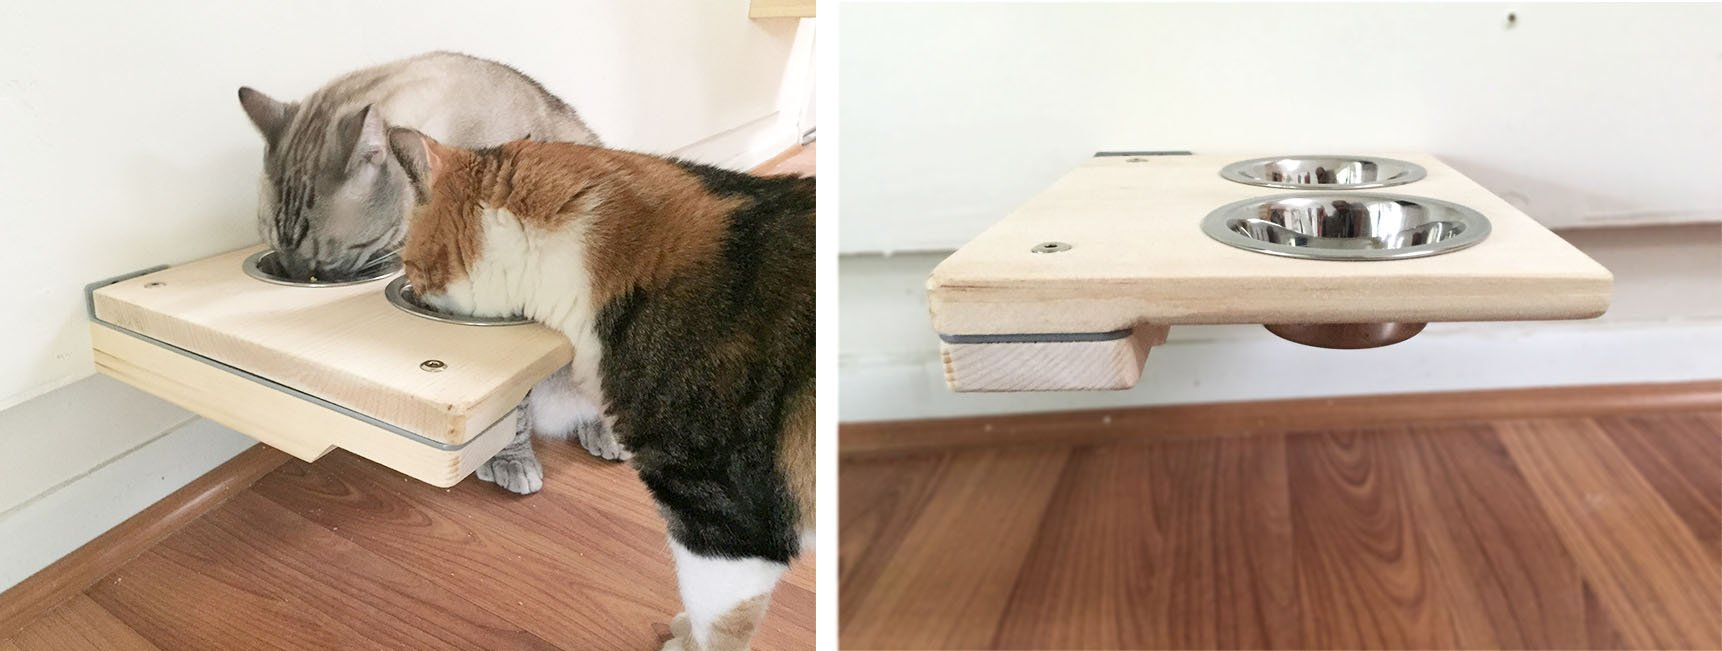 CatastrophiCreations Cat Mod Feeder Handcrafted Elevated Wall, Unfinished, One Size